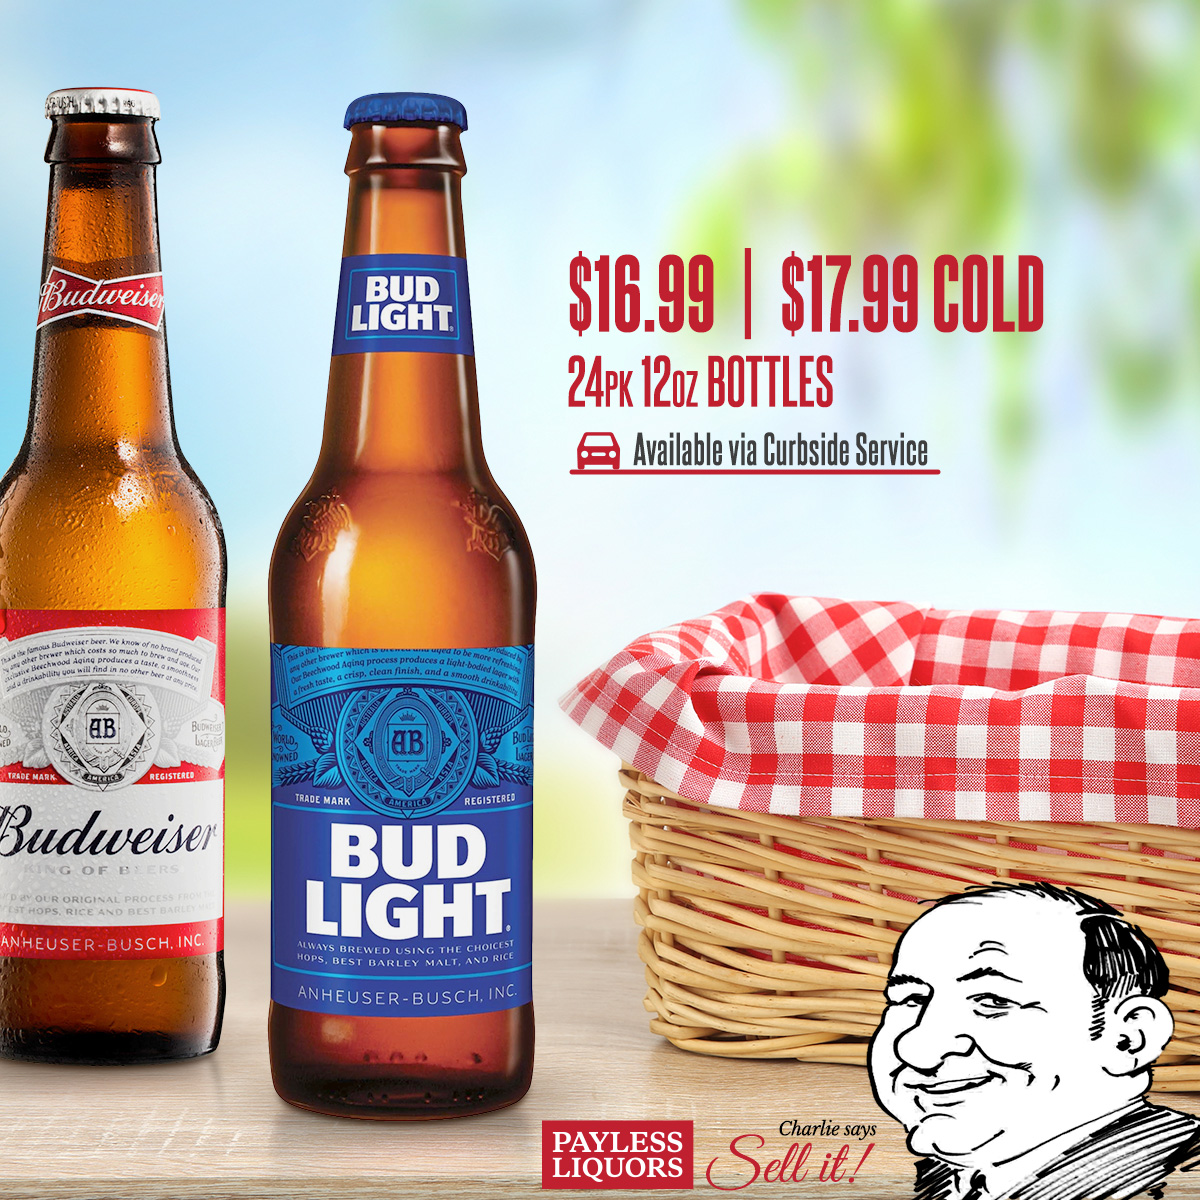 Bud Light & Budweiser 24pk 12oz Bottles